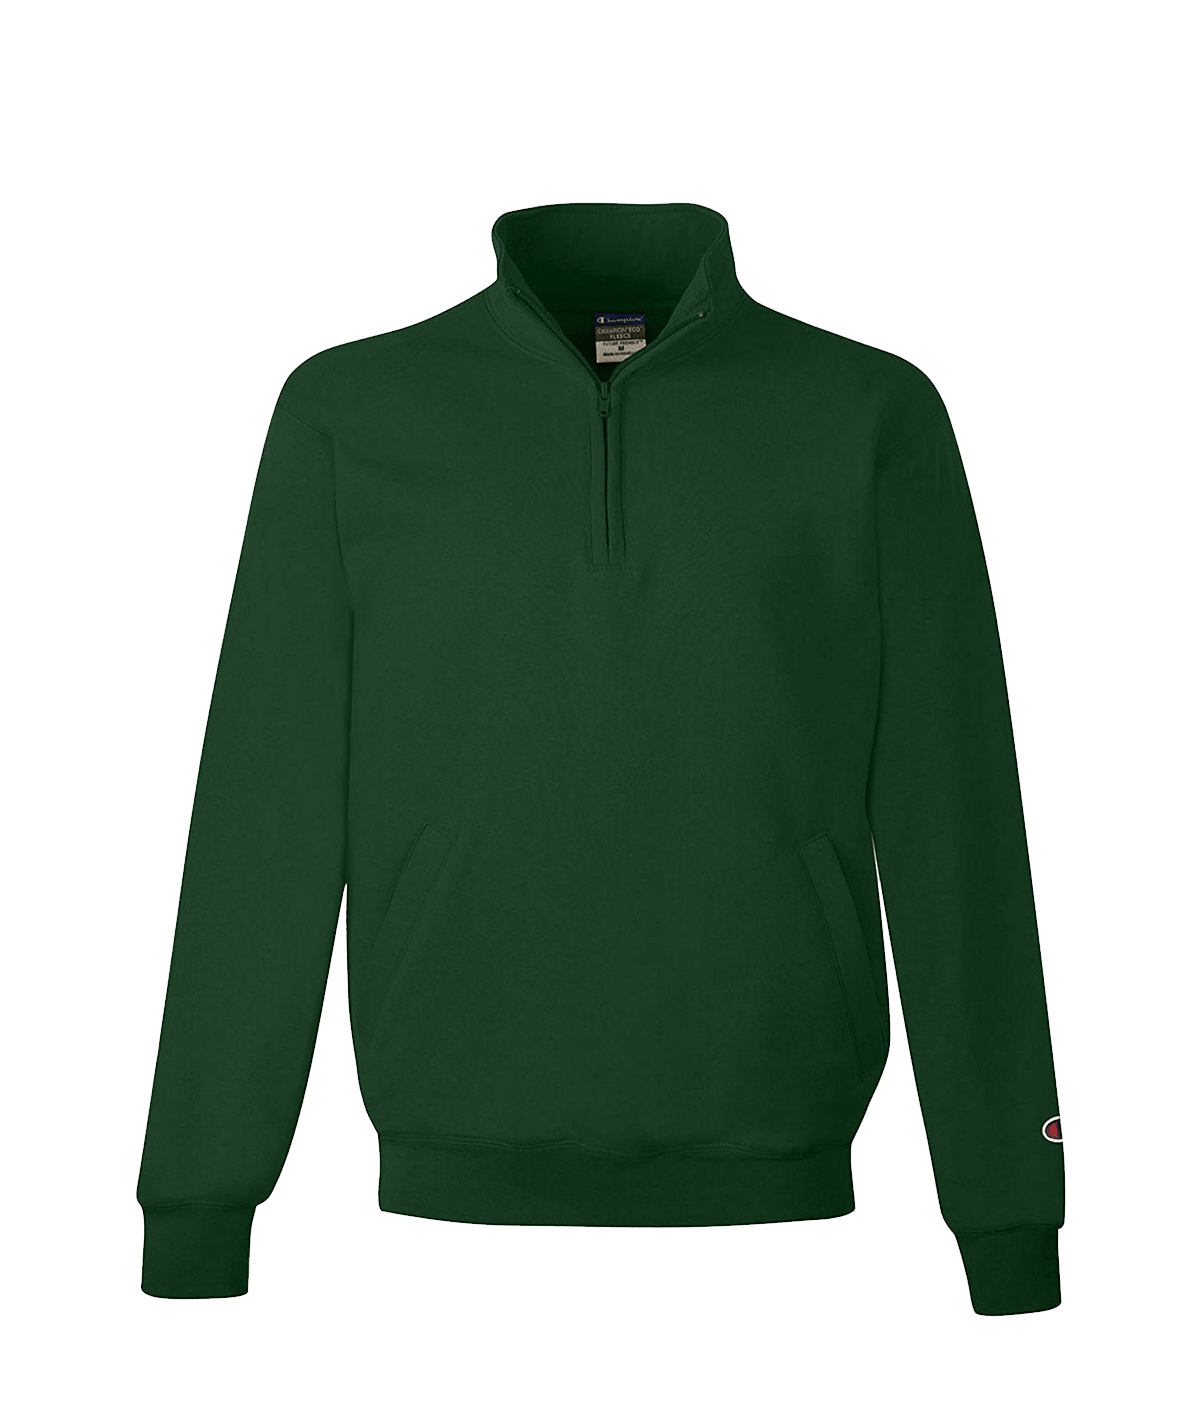 Champion S400 Eco Fleece 1/4 Zip